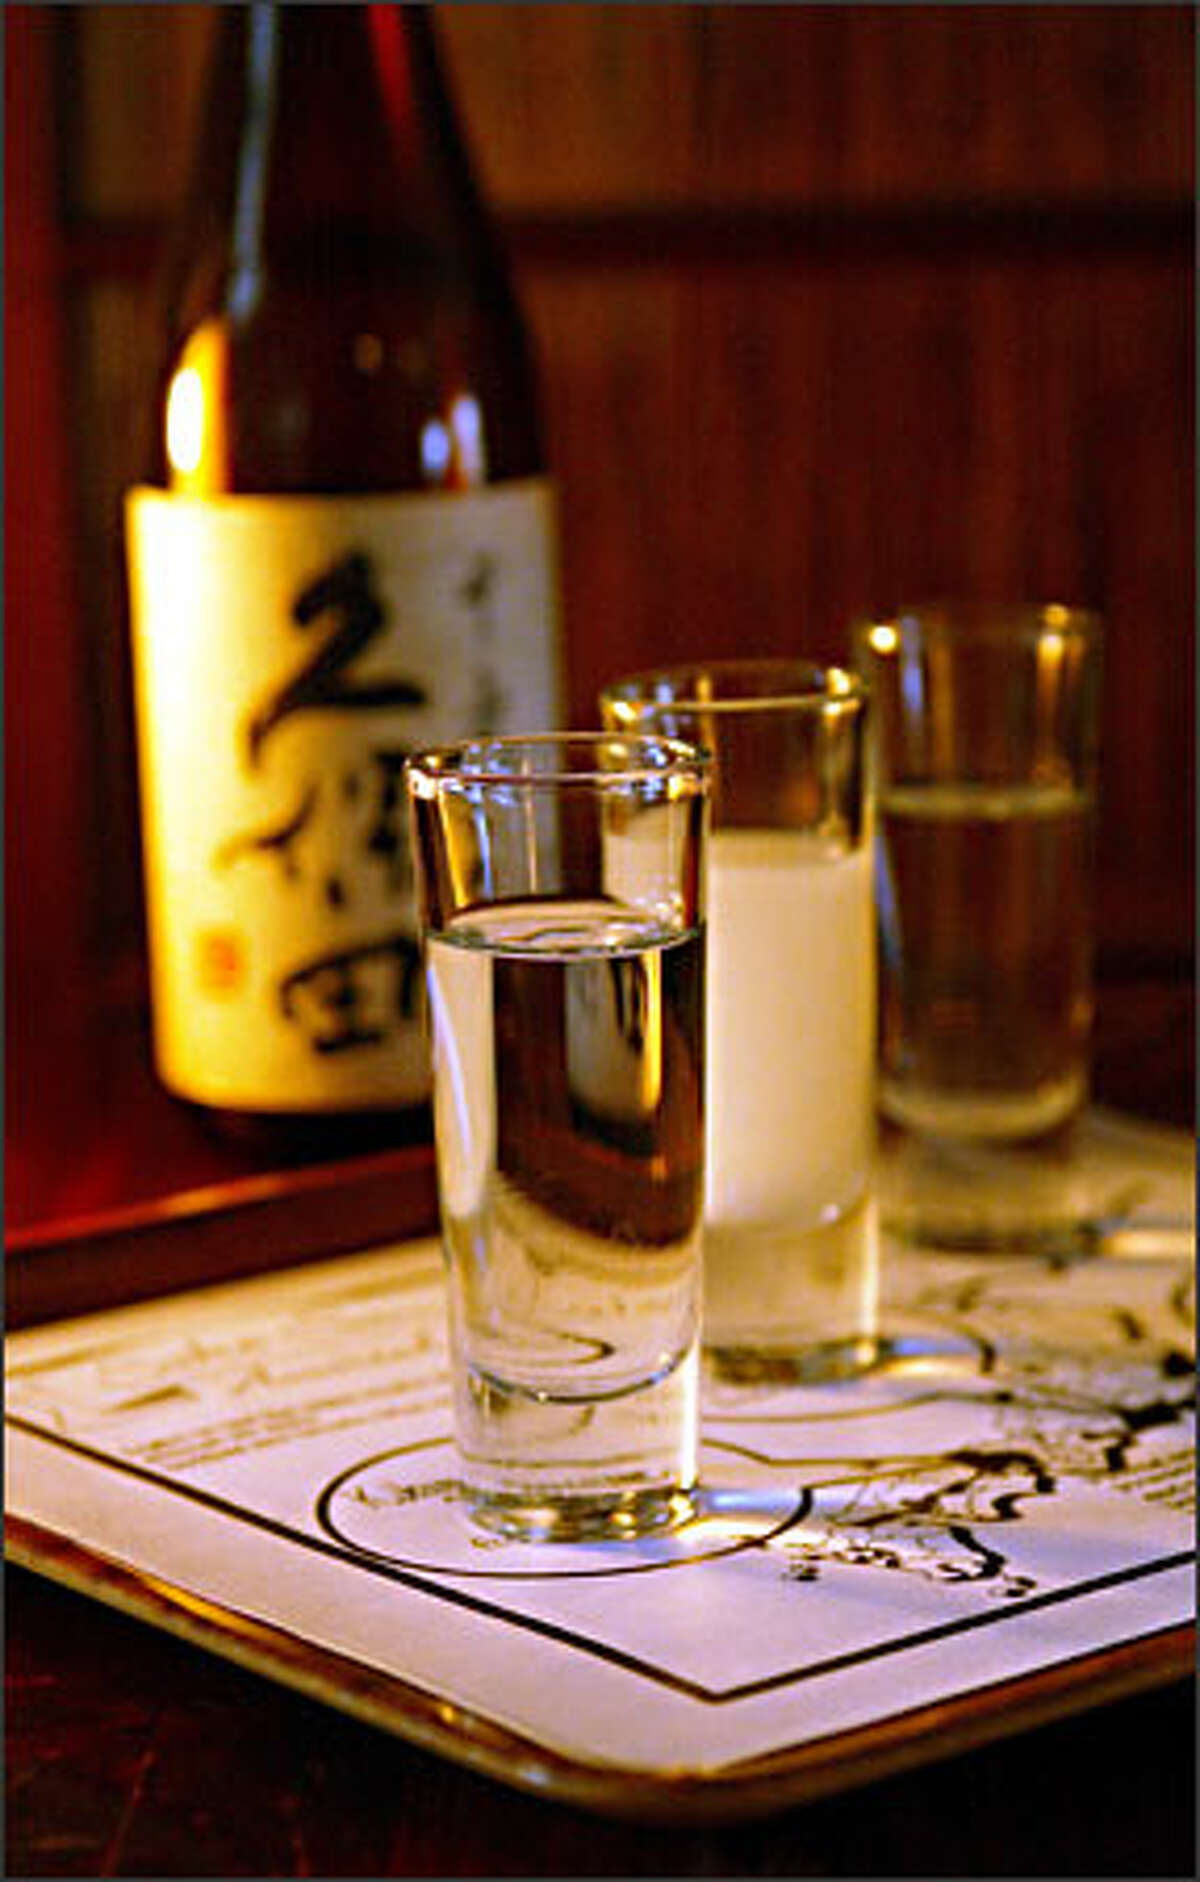 A sampler of, from left, taru, nigori and daiginjo sakes is served on a tray with a map of Japan that points out the brews' regions of origin.